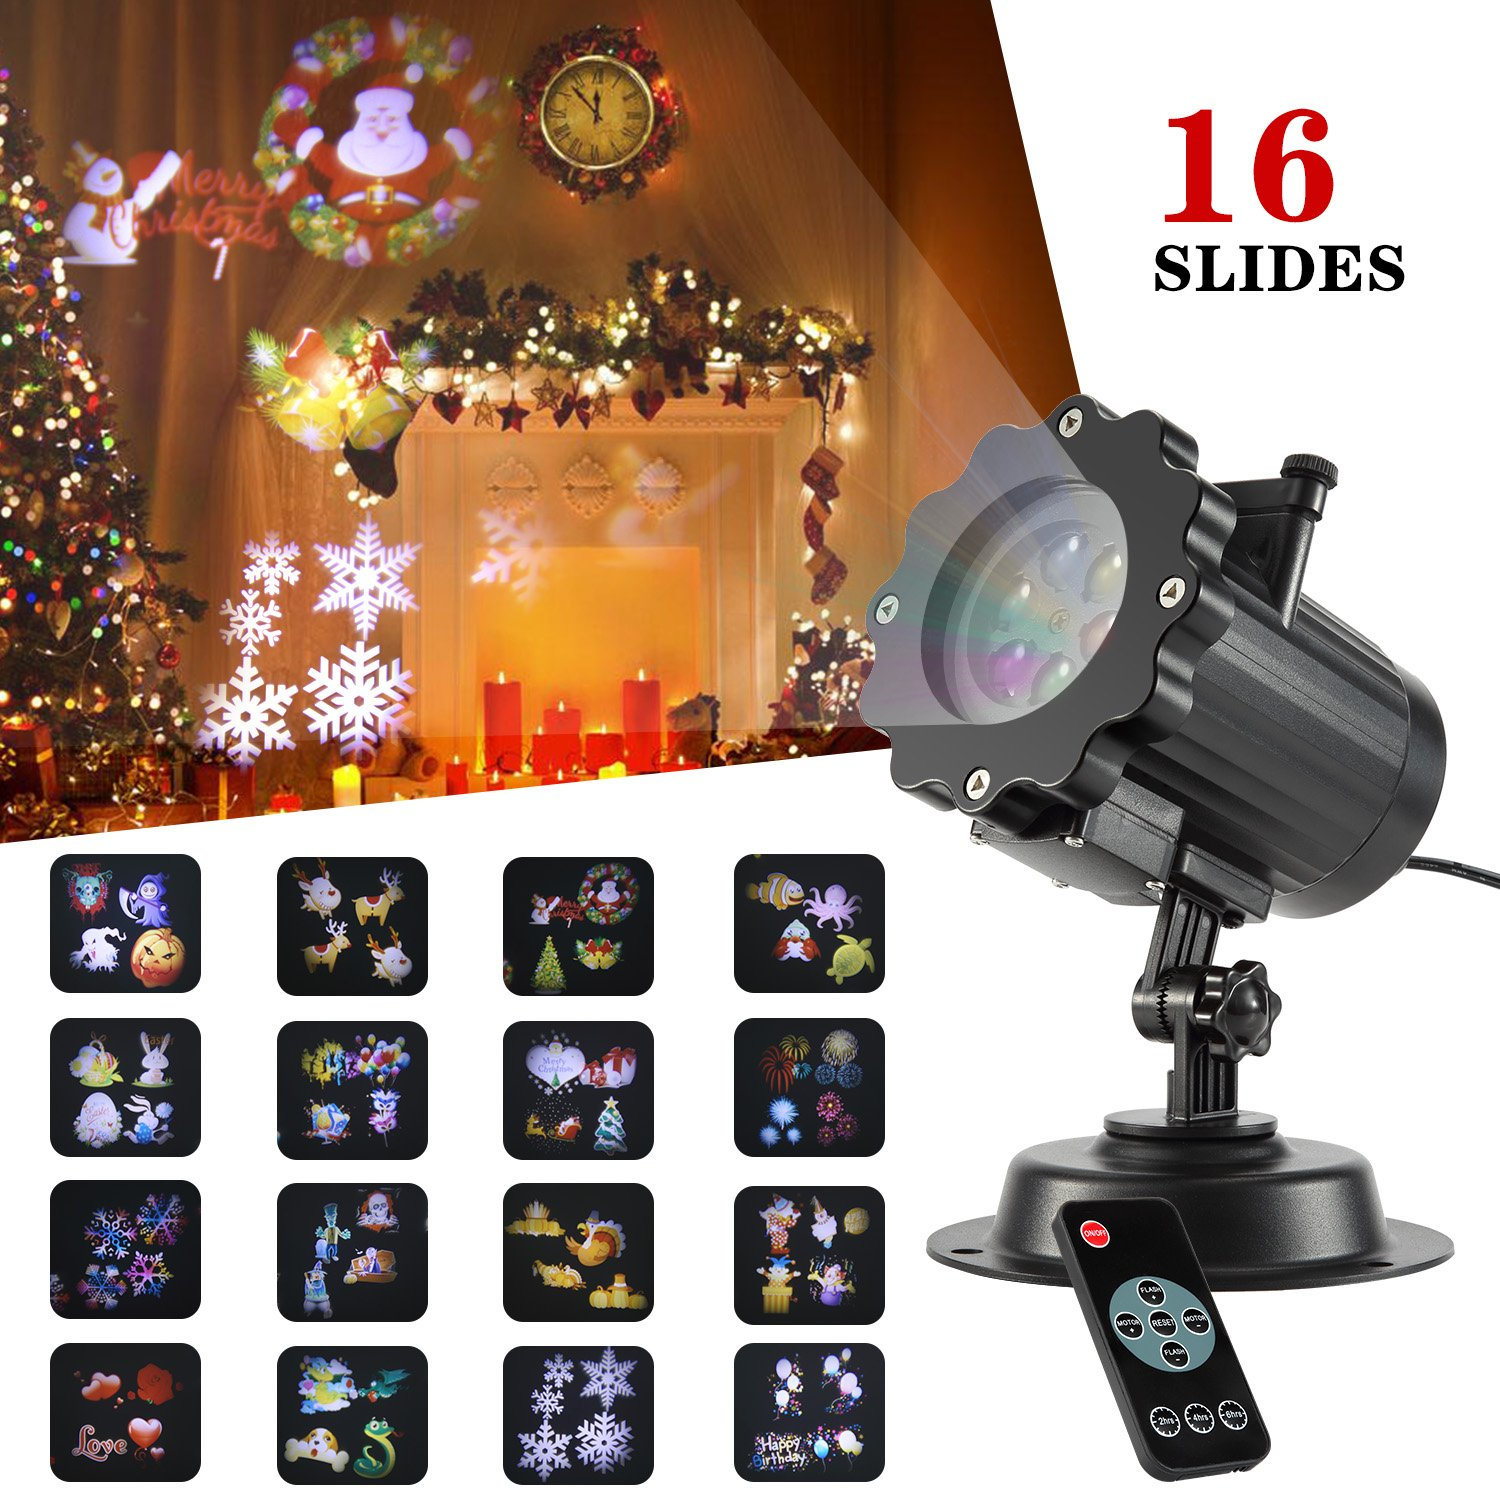 SENDOW Led Projector Lights For Birthday 16 Patterns Snowflake Light Projector with RF Remote Dynamic Xmas Lights for Christmas Gift Decorations Birthday Party Wedding and Valentain's Day